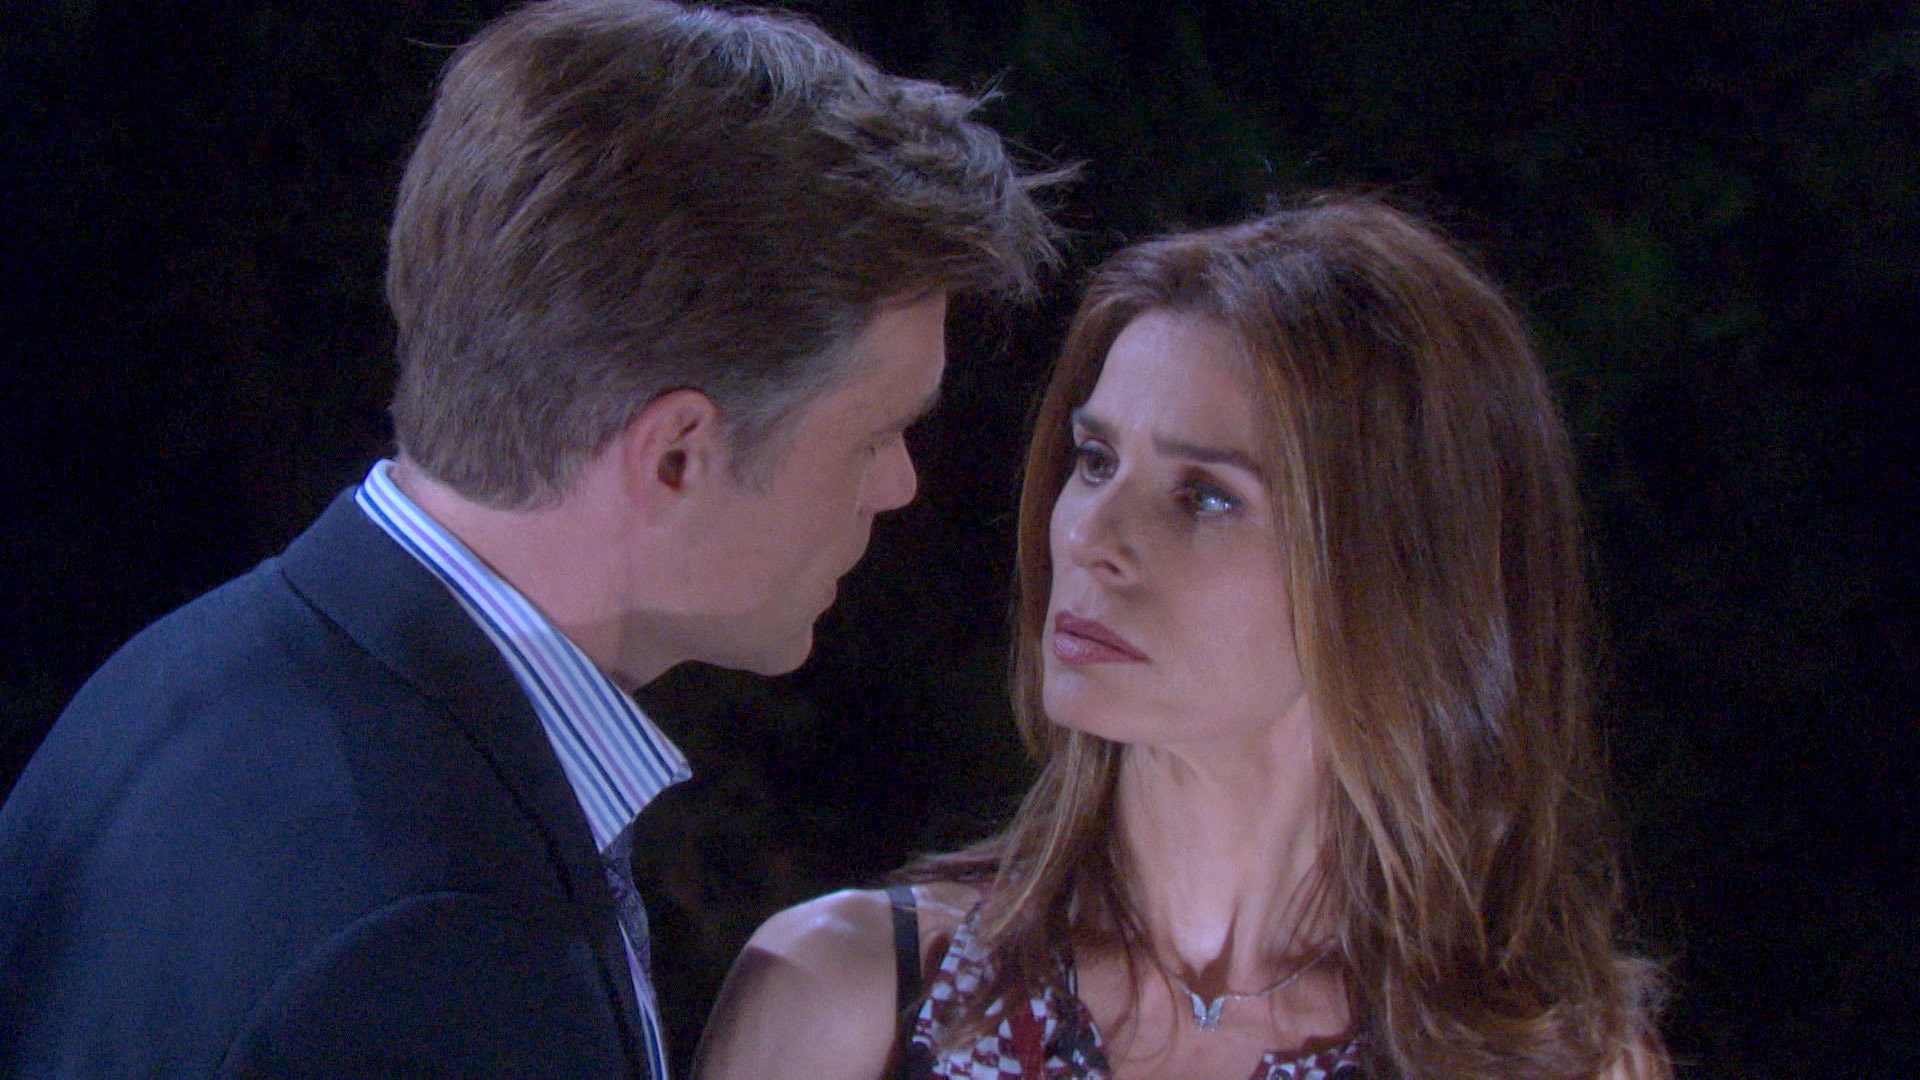 Aiden throws caution to the wind with Hope.